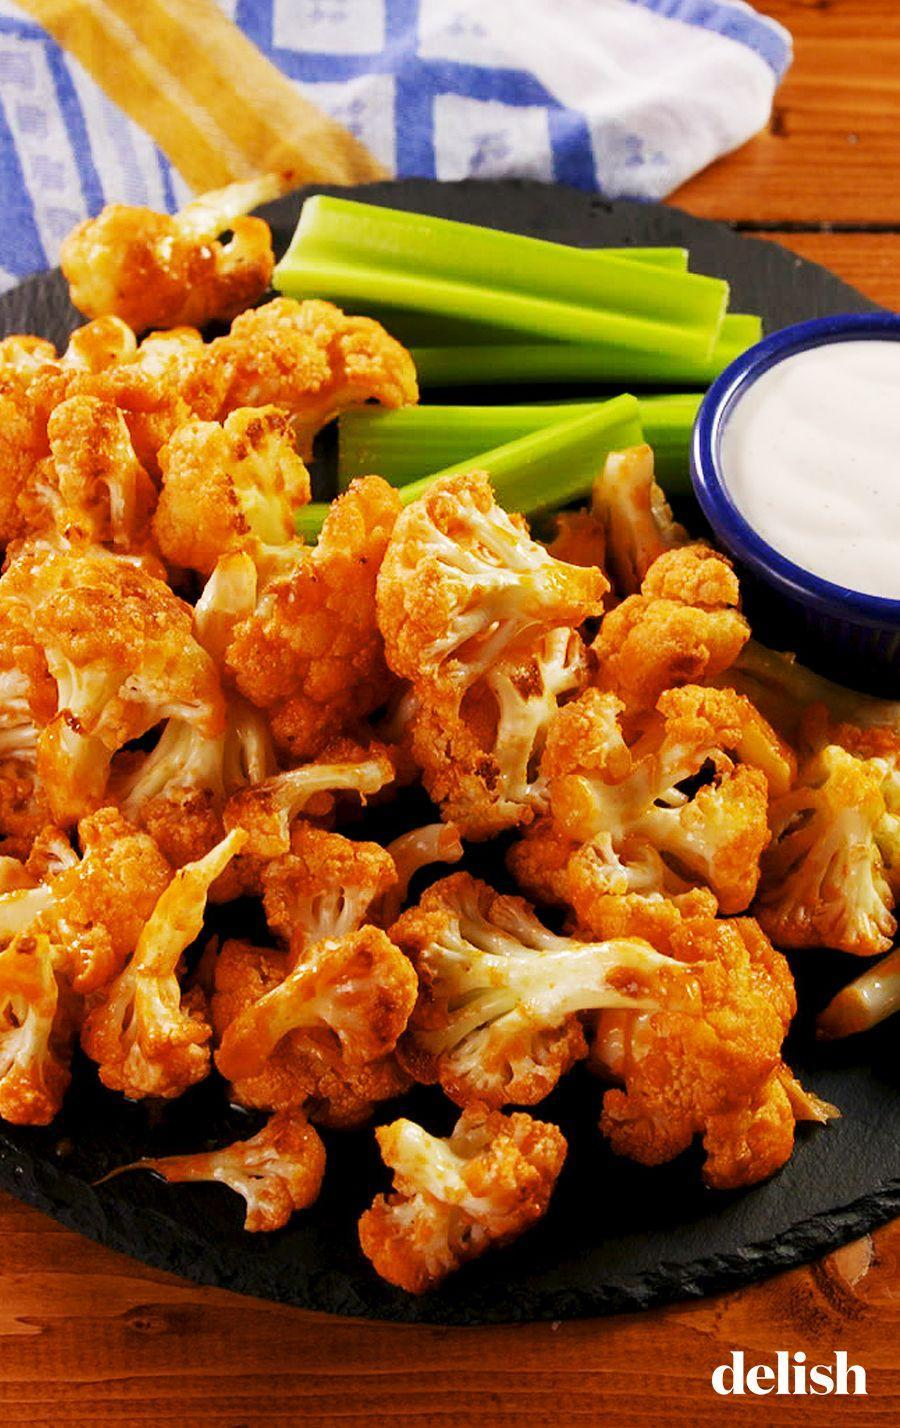 """<p>This cauliflower is totally buff.</p><p>Get the recipe from <a href=""""https://www.delish.com/cooking/recipe-ideas/a25847433/buffalo-cauliflower-bites-recipe/"""" rel=""""nofollow noopener"""" target=""""_blank"""" data-ylk=""""slk:Delish"""" class=""""link rapid-noclick-resp"""">Delish</a>.</p>"""